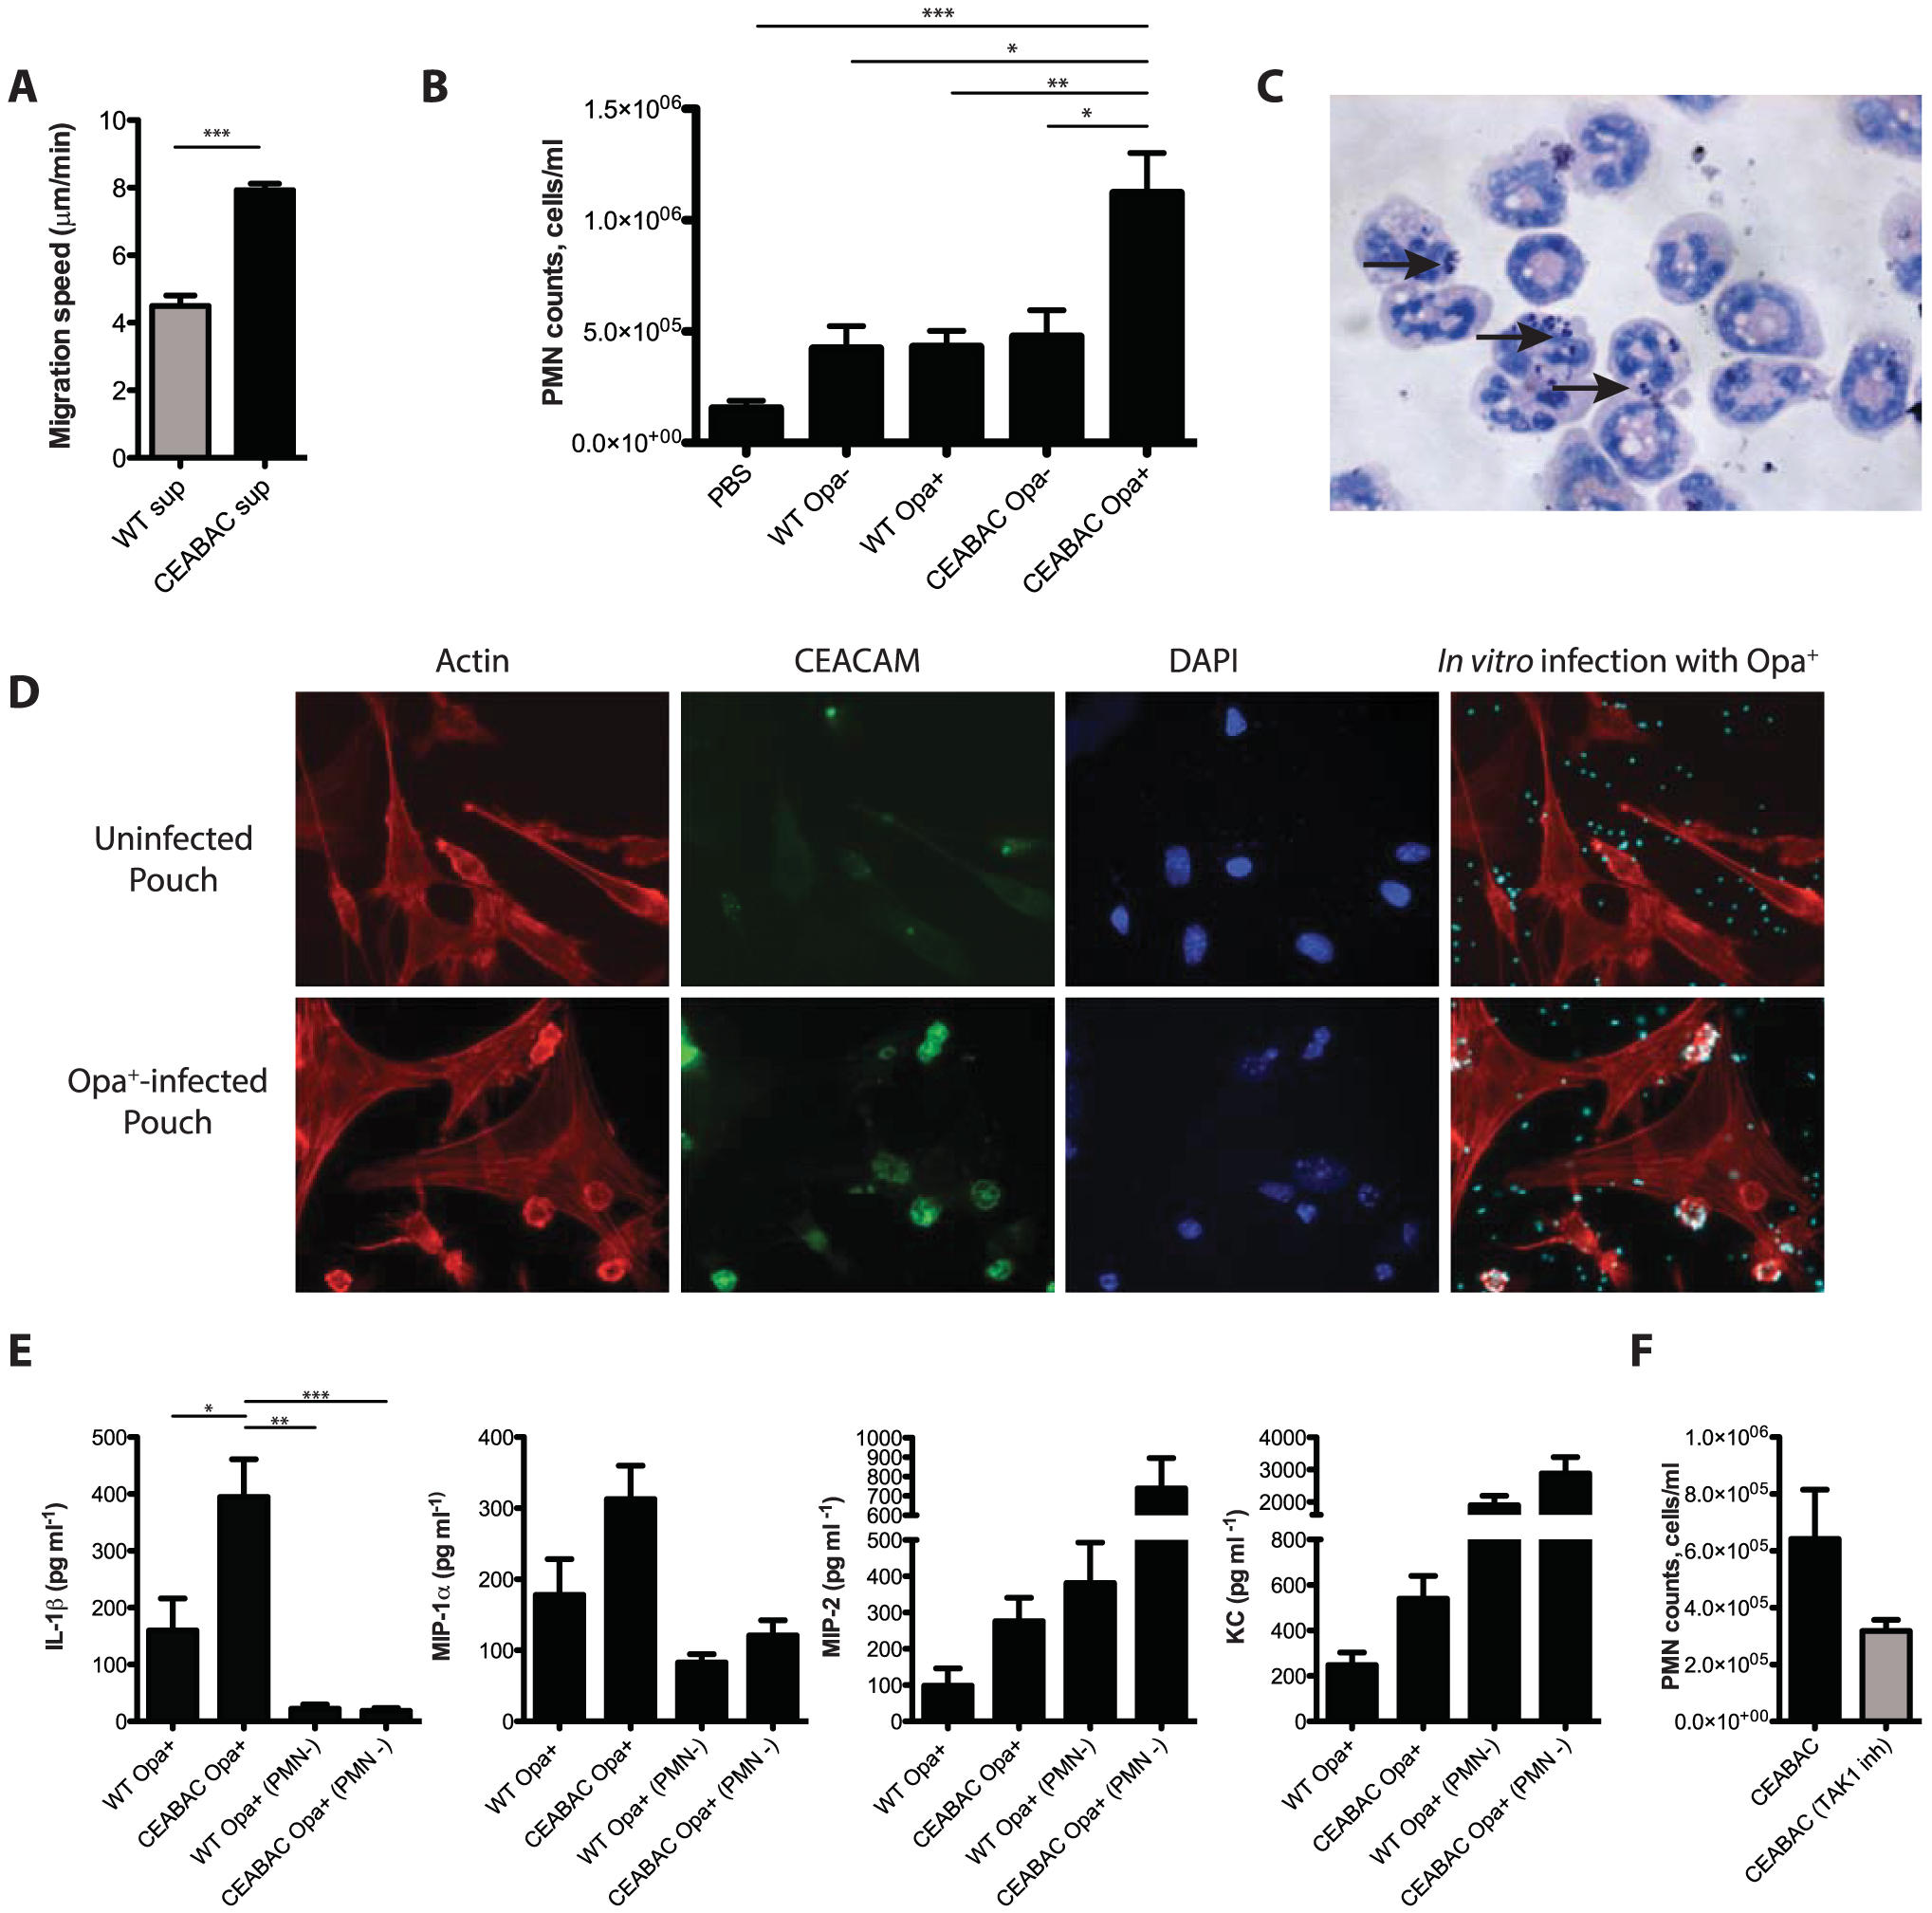 CEACAM binding stimulates the inflammatory response to <i>N. gonorrhoeae in vivo</i>.